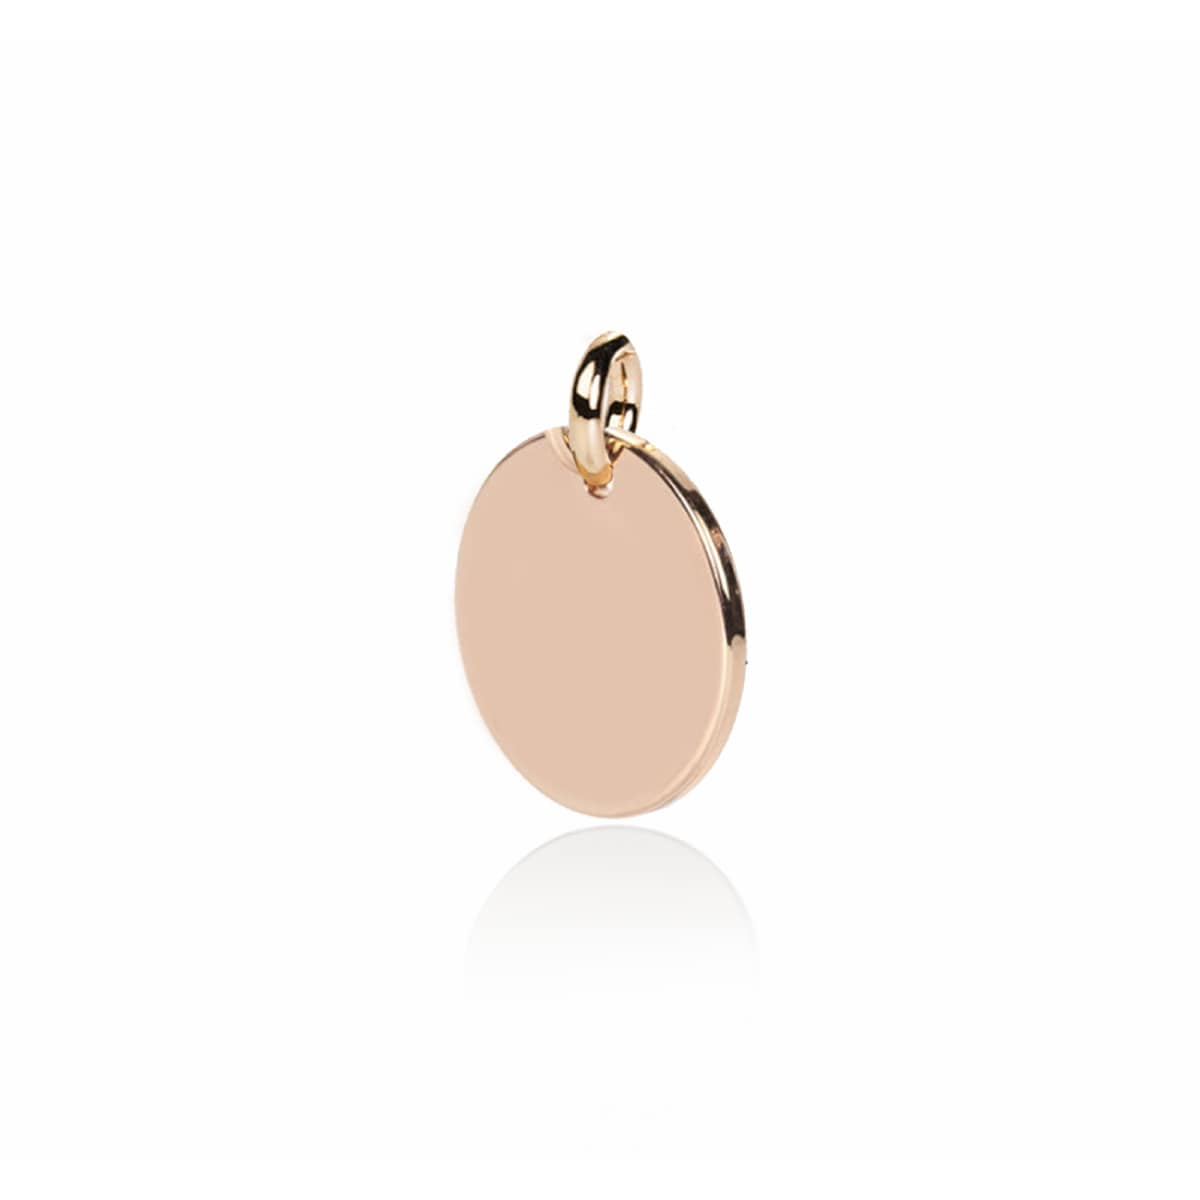 Engravable Decoration - 18k Rose Gold Circle Charm